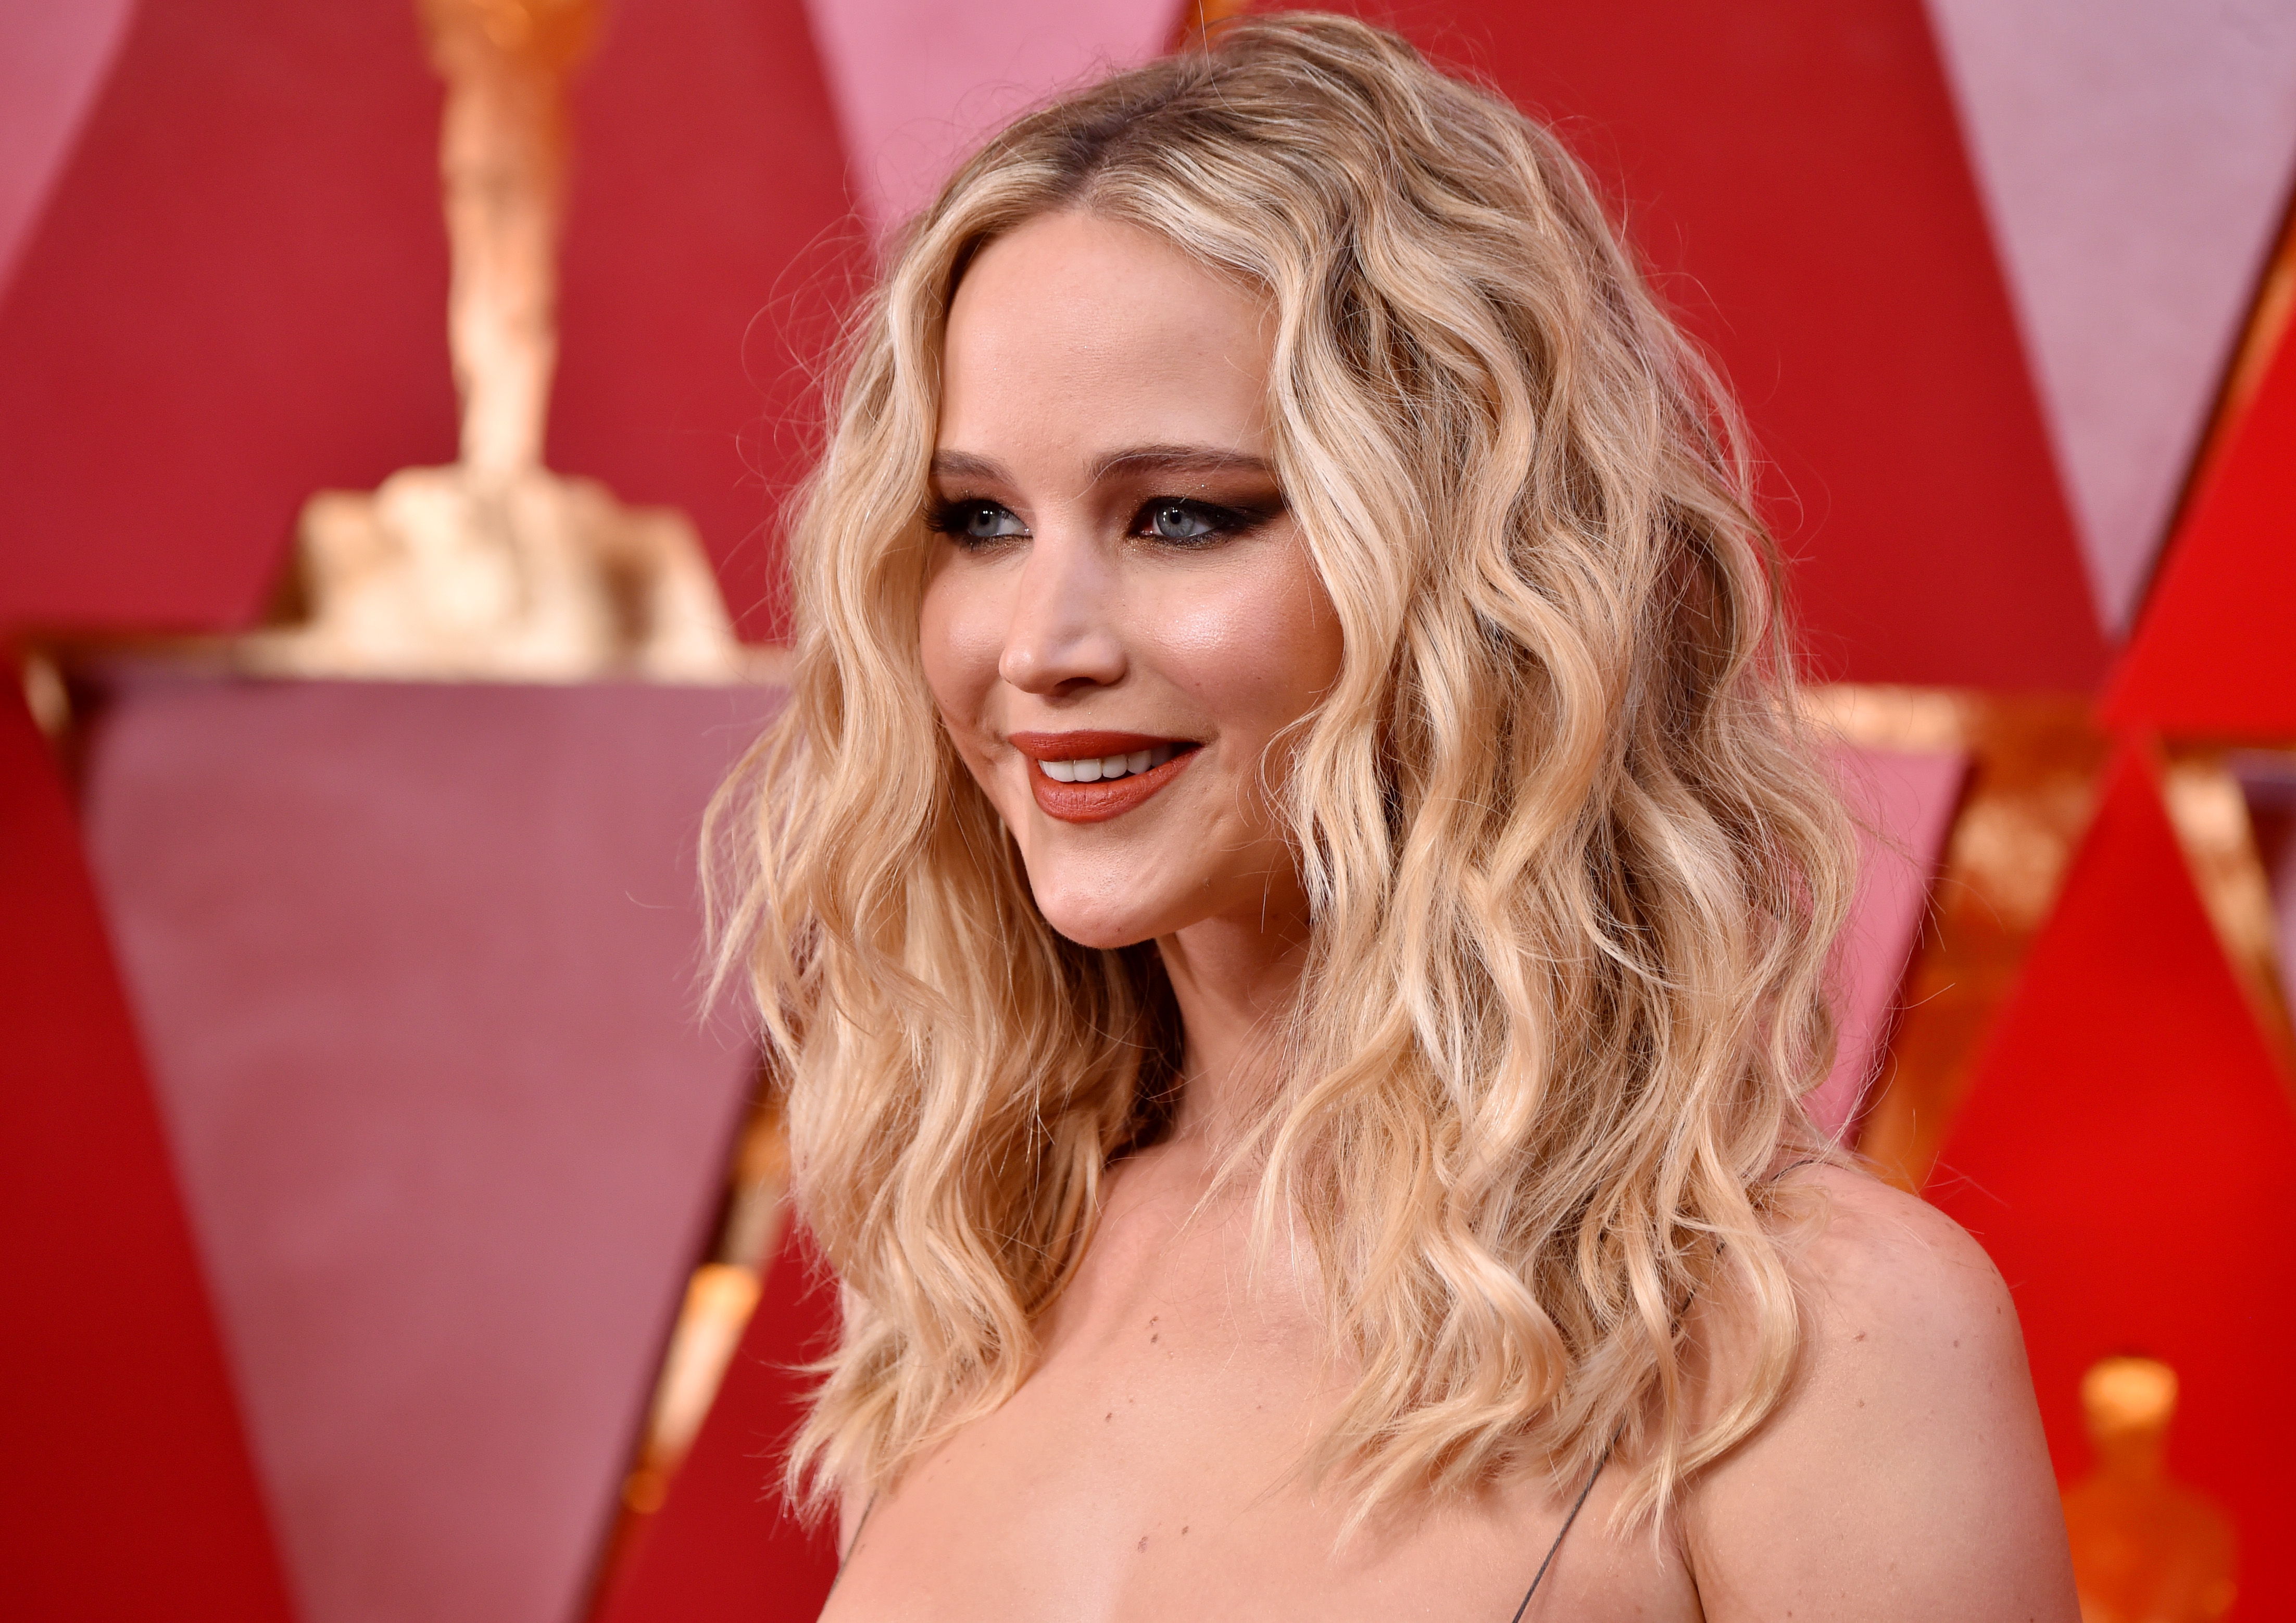 Jennifer Lawrence Returns From Year-Long Acting Hiatus With Secret A24 Movie